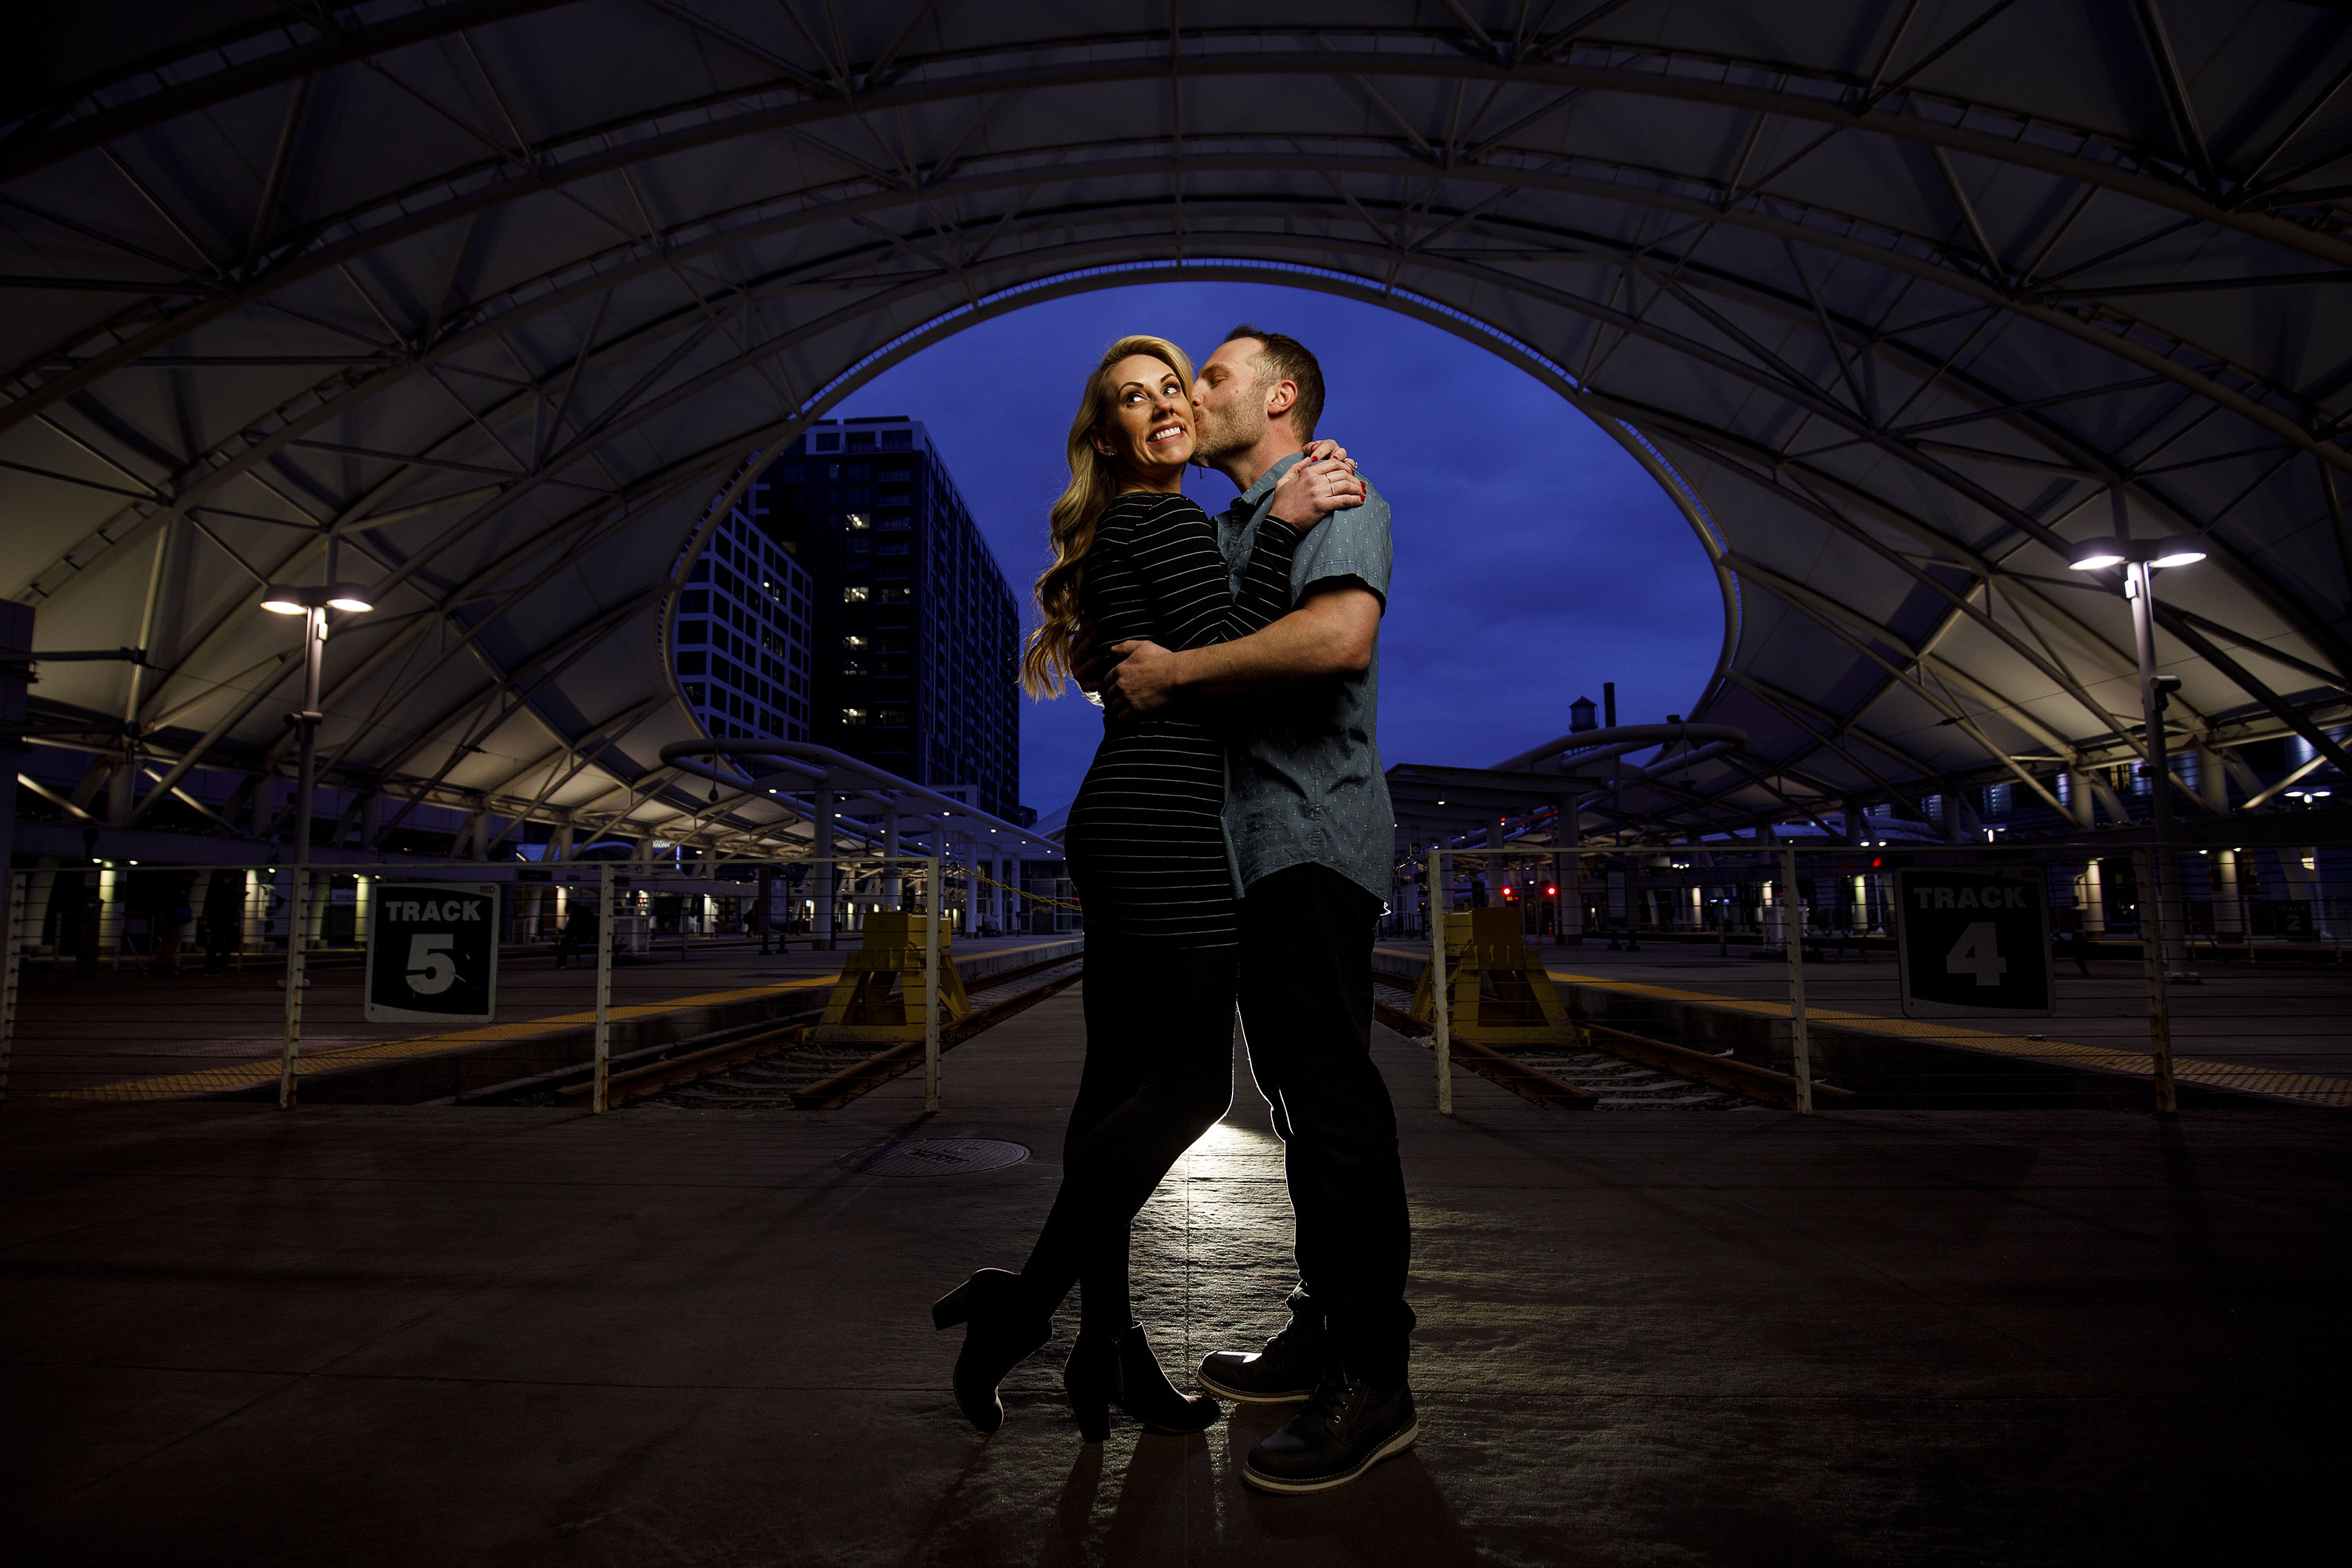 Joe kisses Mesha near the train platform at Union Station Denver during their engagement photos